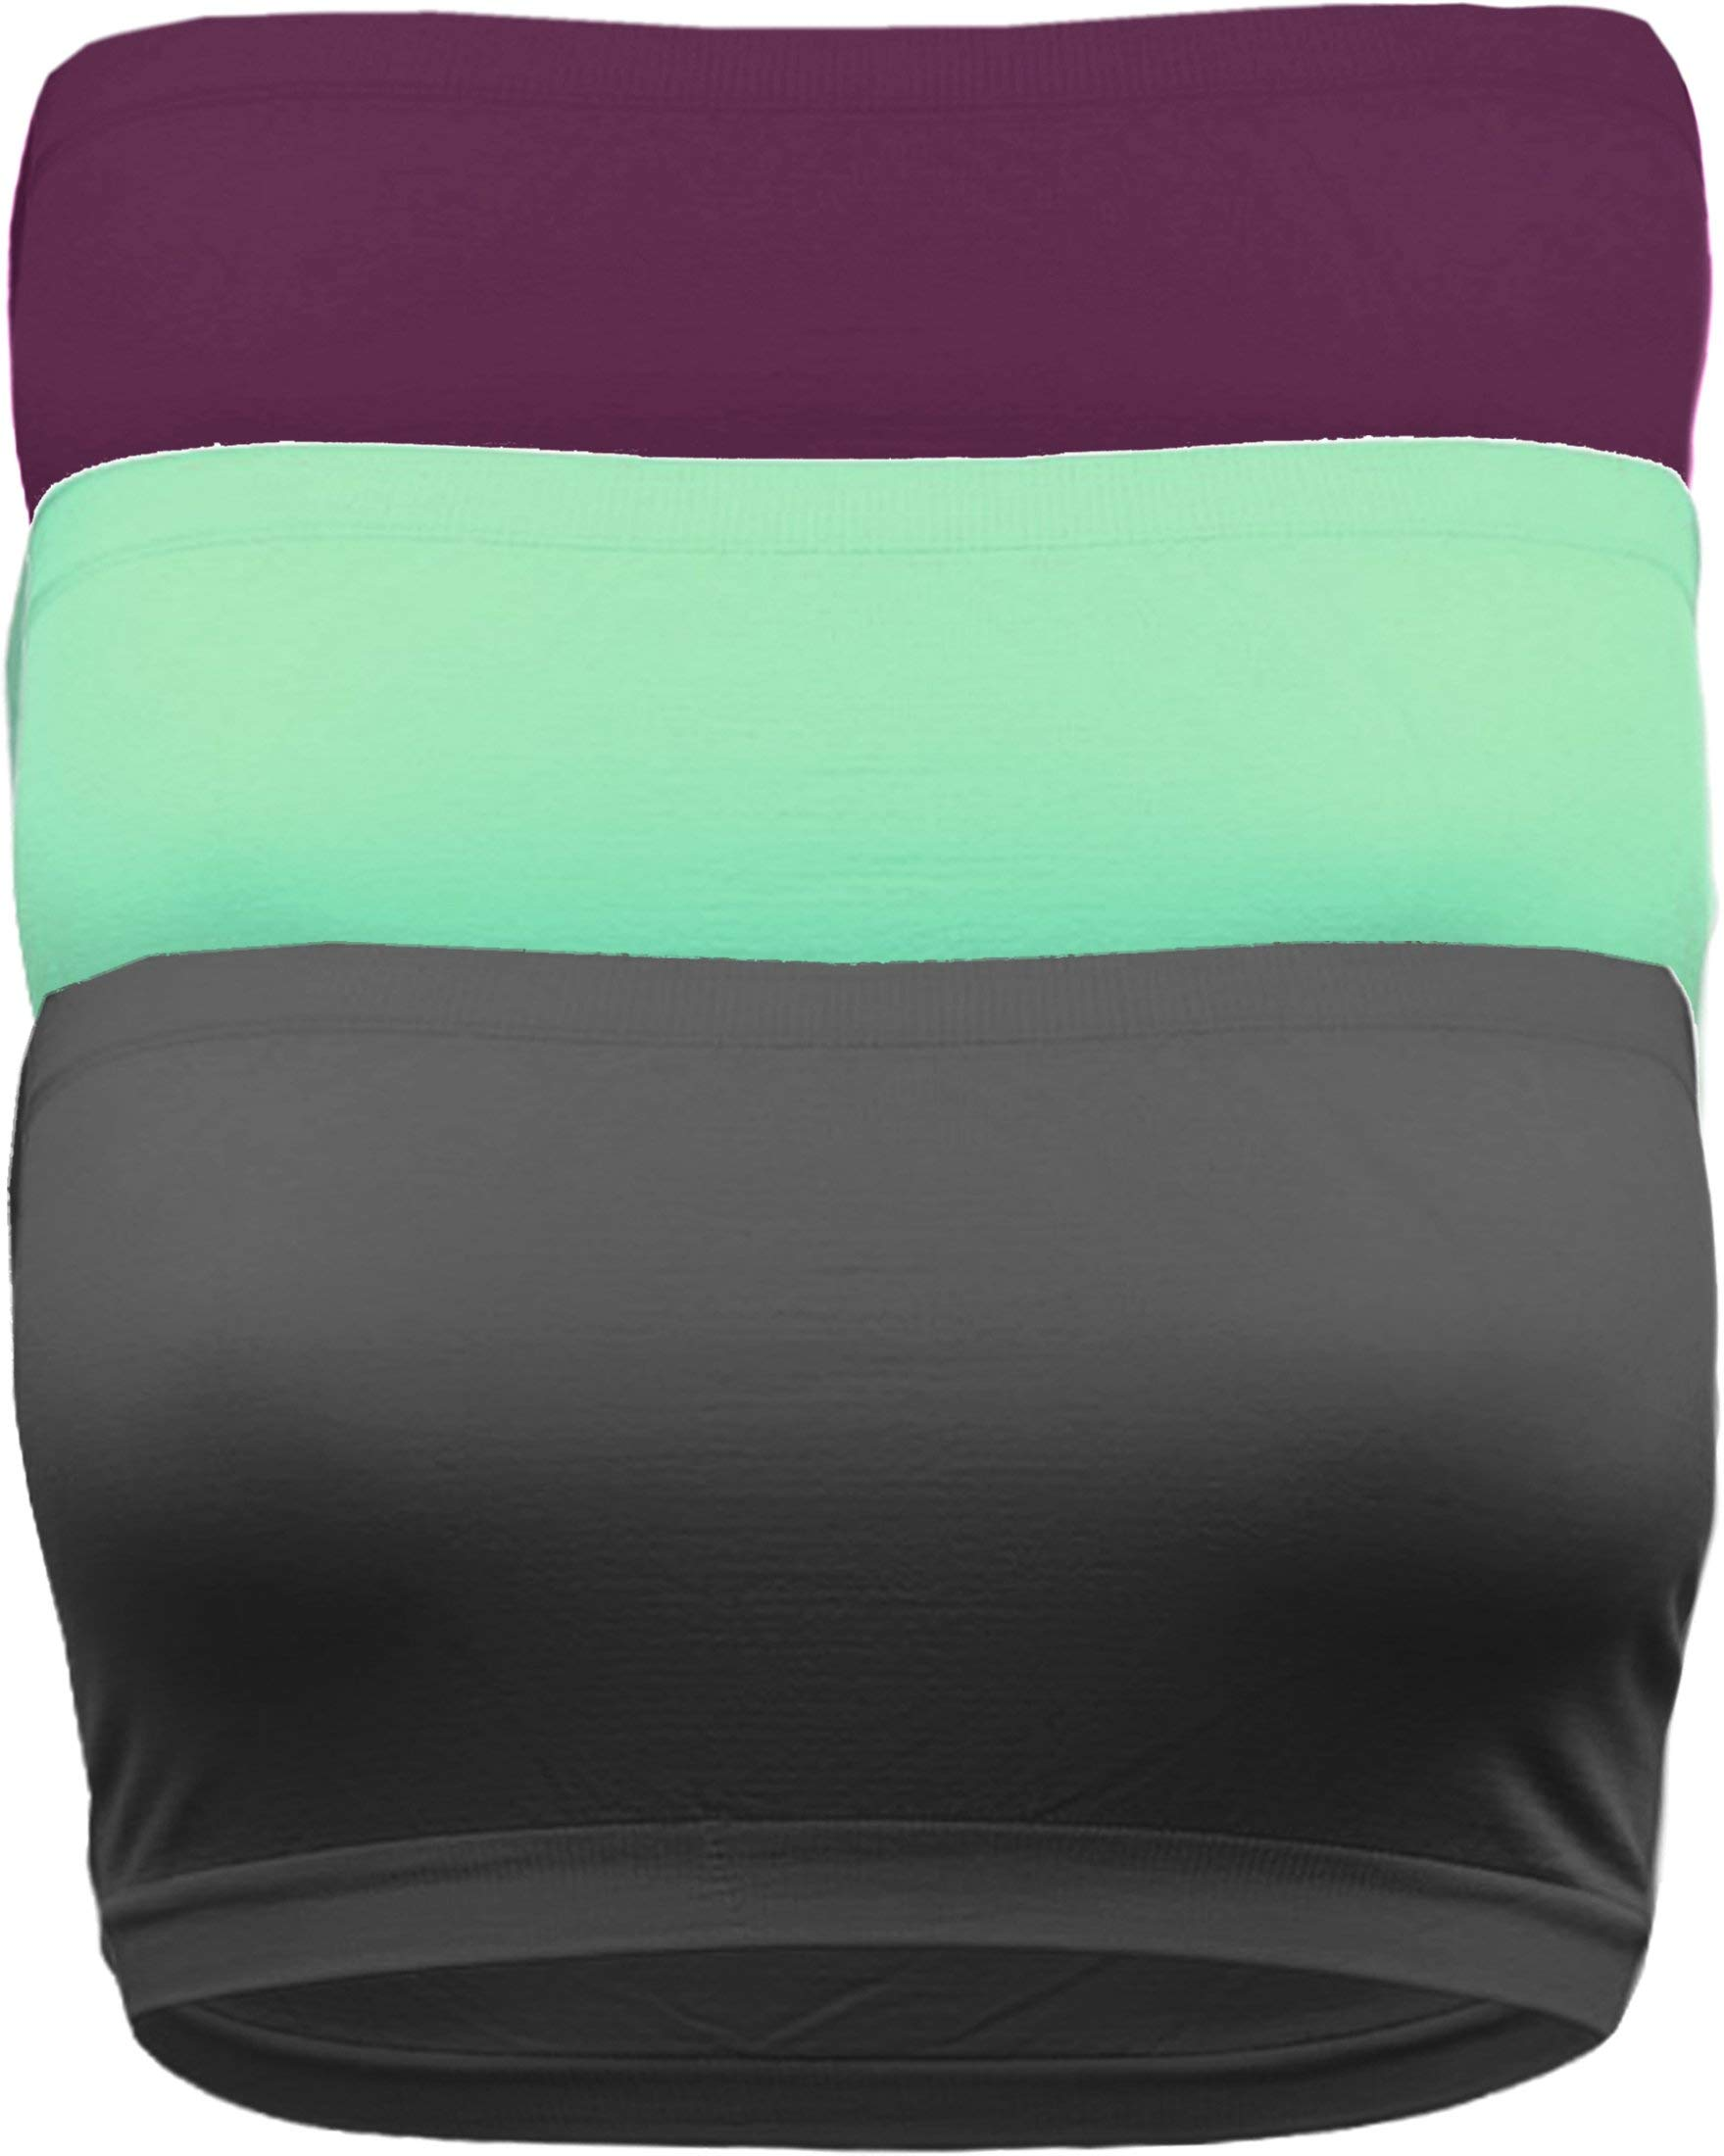 OLLIE ARNES Women's One Size Strapless Seamless Stretch Bandeau Tube Bra Top PLM_MNT_DKGRY-OS by OLLIE ARNES